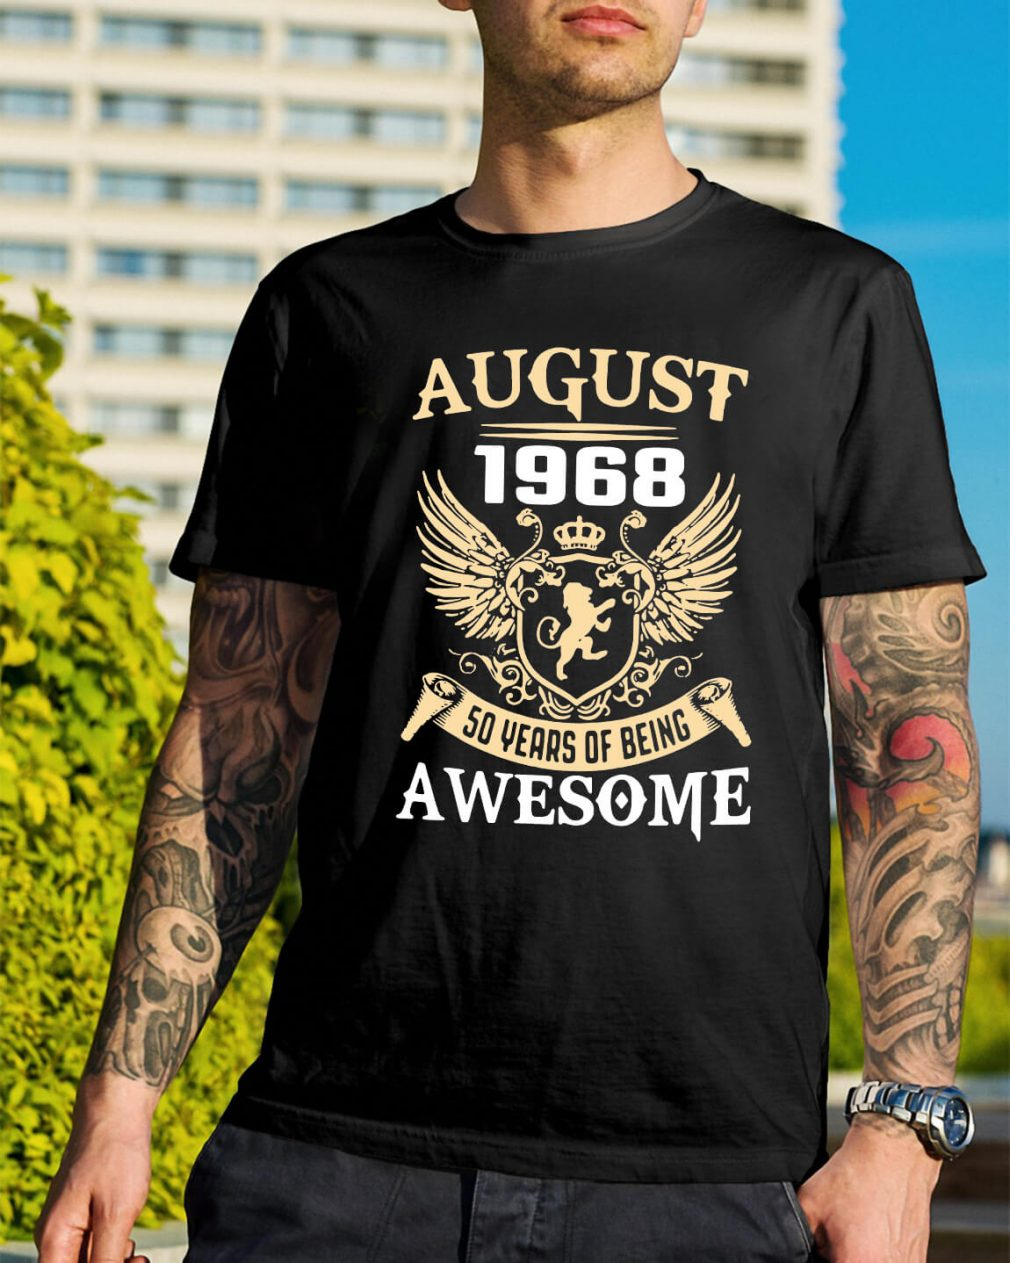 August 1968 50 years of being awesome shirt